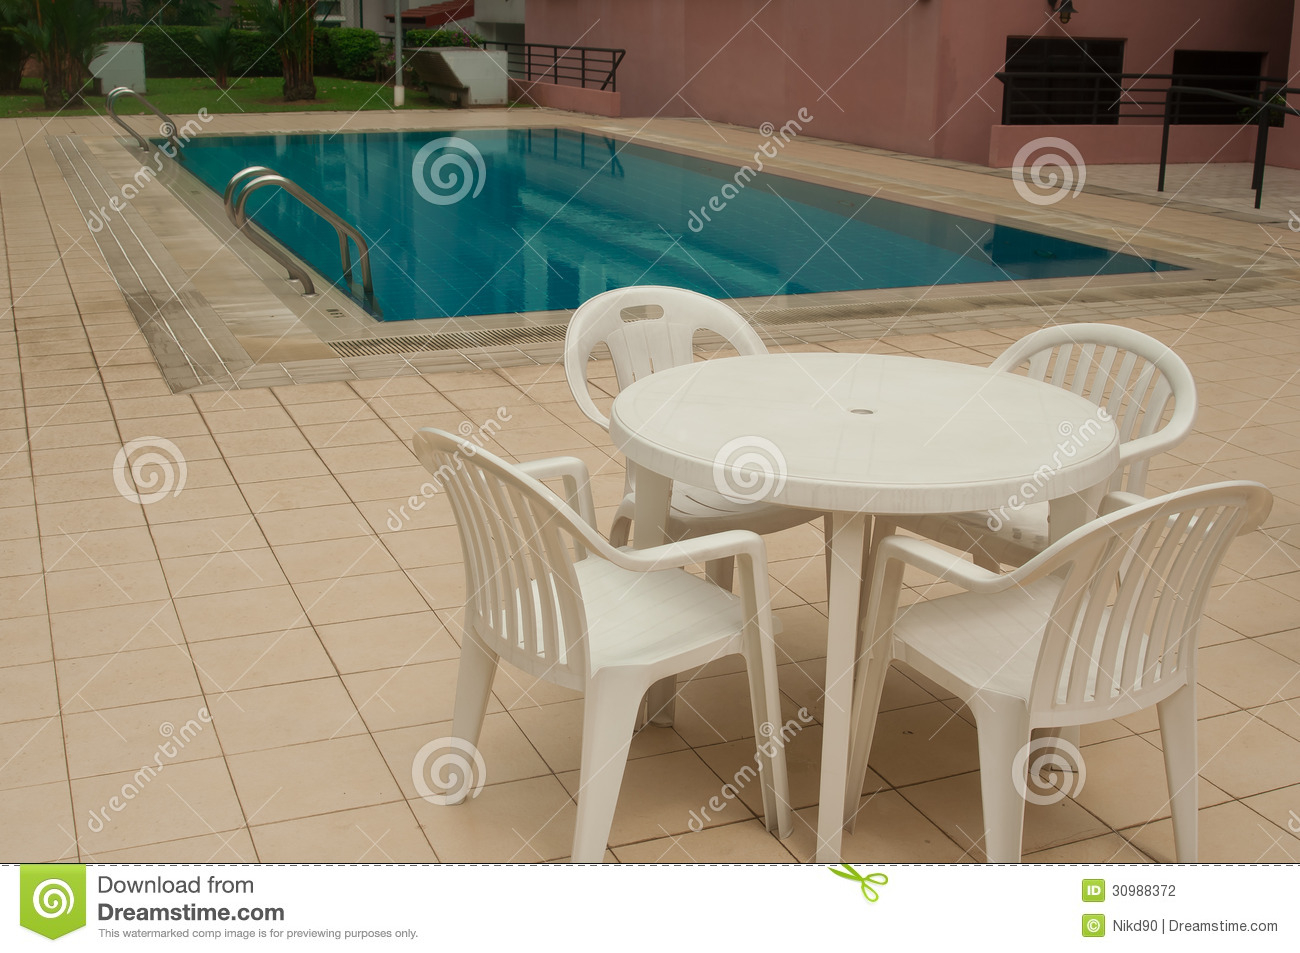 Chairs and table beside swimming pool inside the aparment for Poolside table and chairs